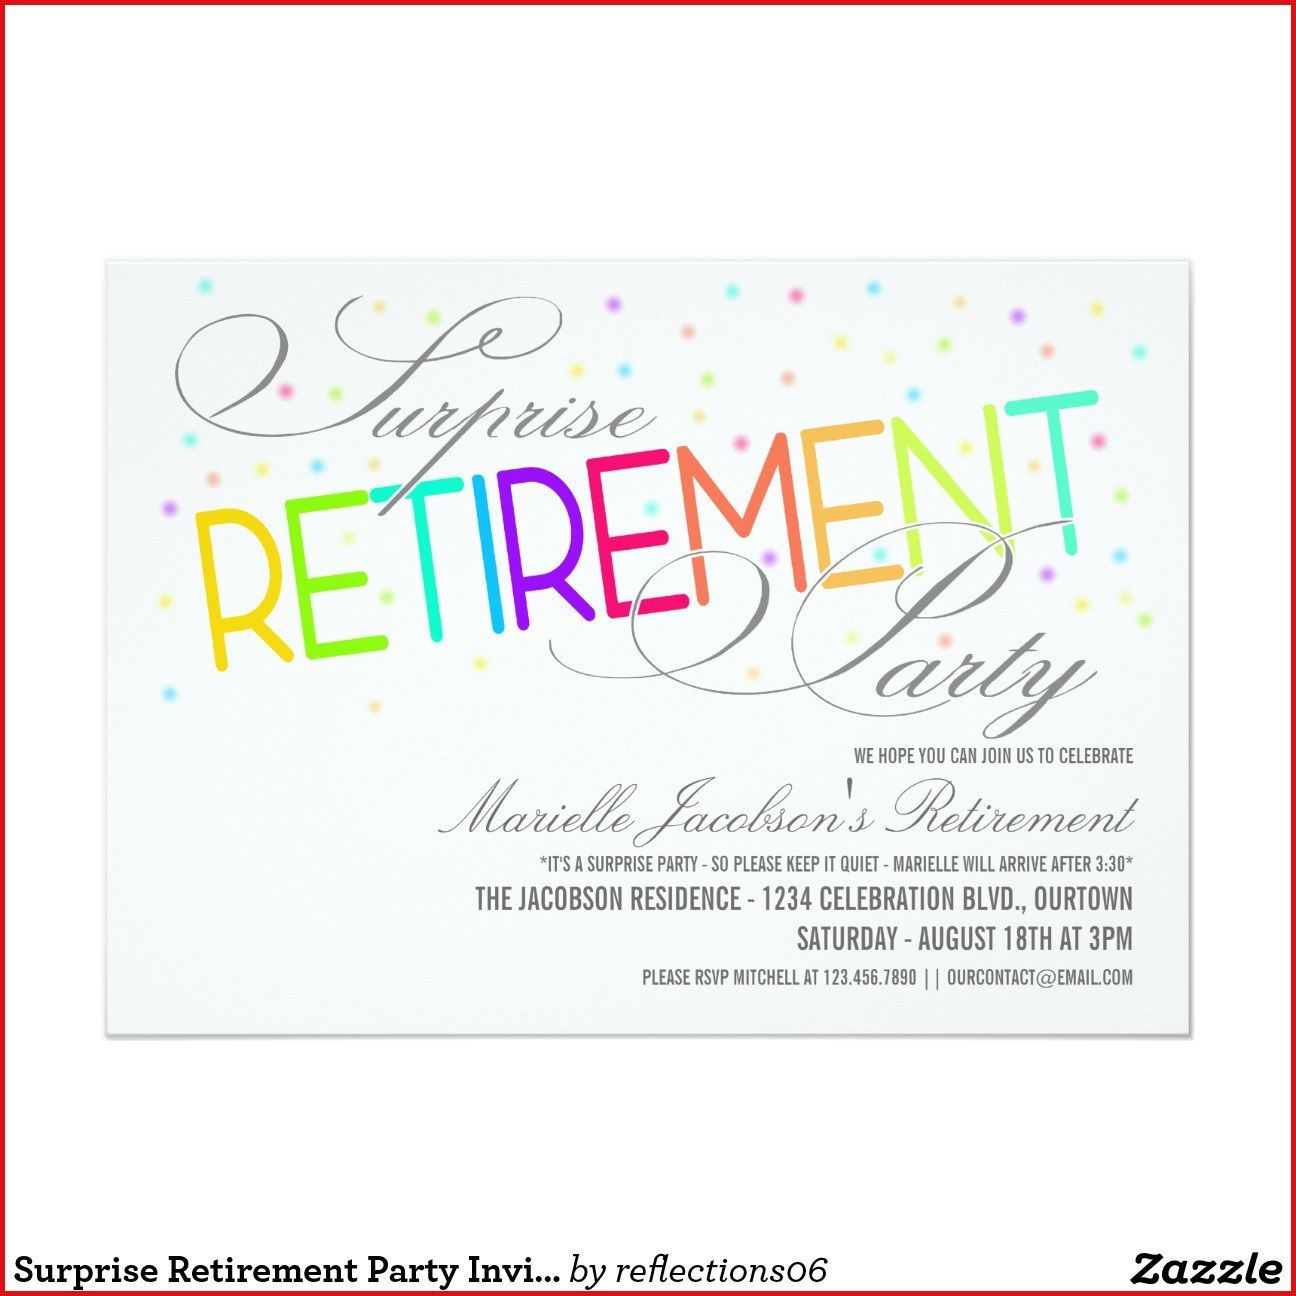 009 Stirring Retirement Party Invitation Template Image  Templates For Free Nurse M WordFull